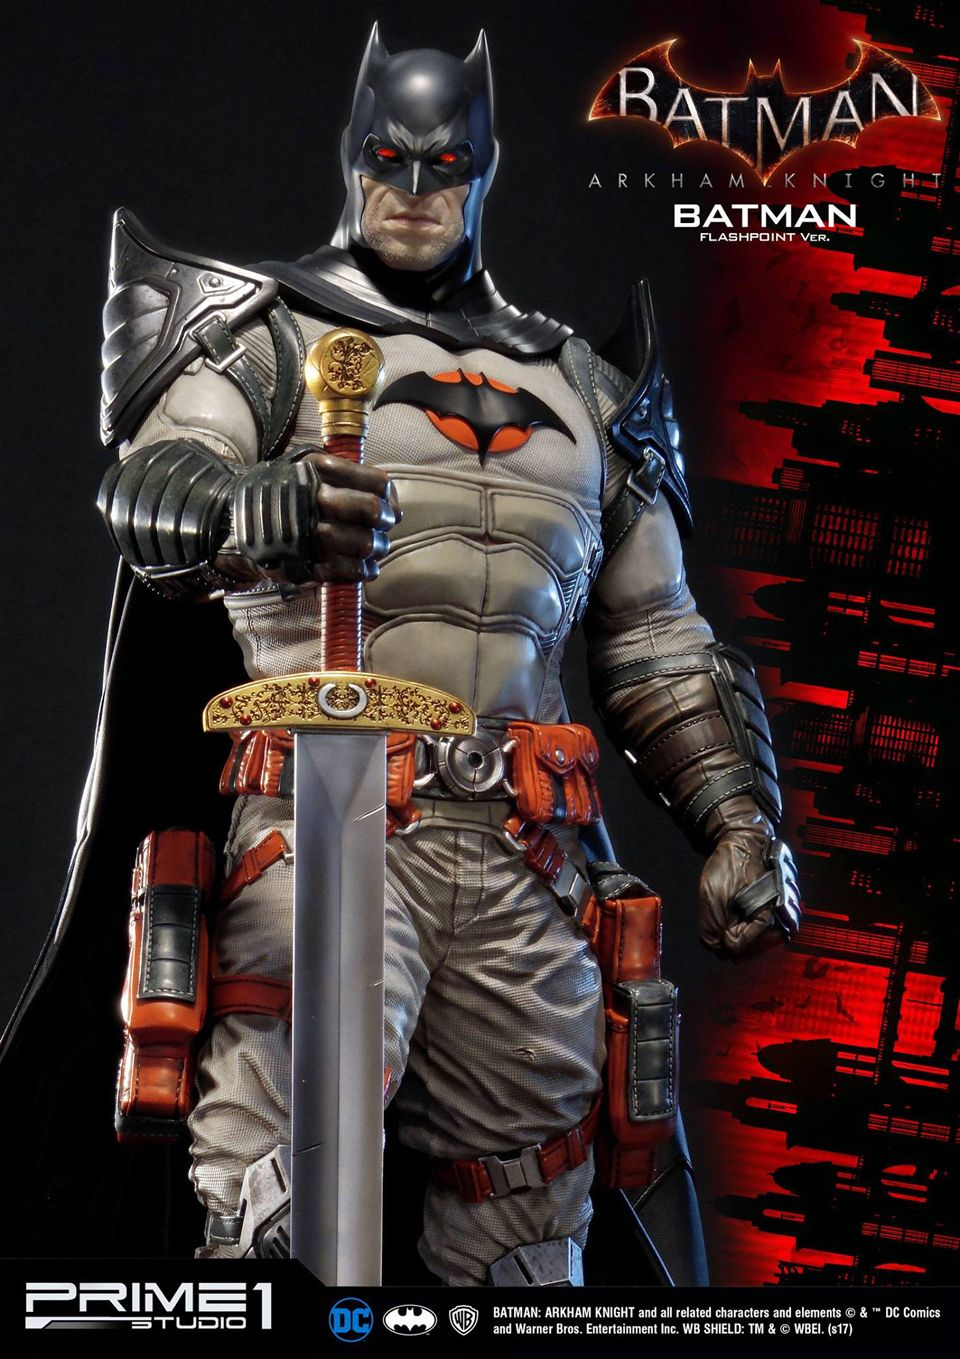 Prime 1 Batman Arkham Knight Flashpoint Batman Statue With